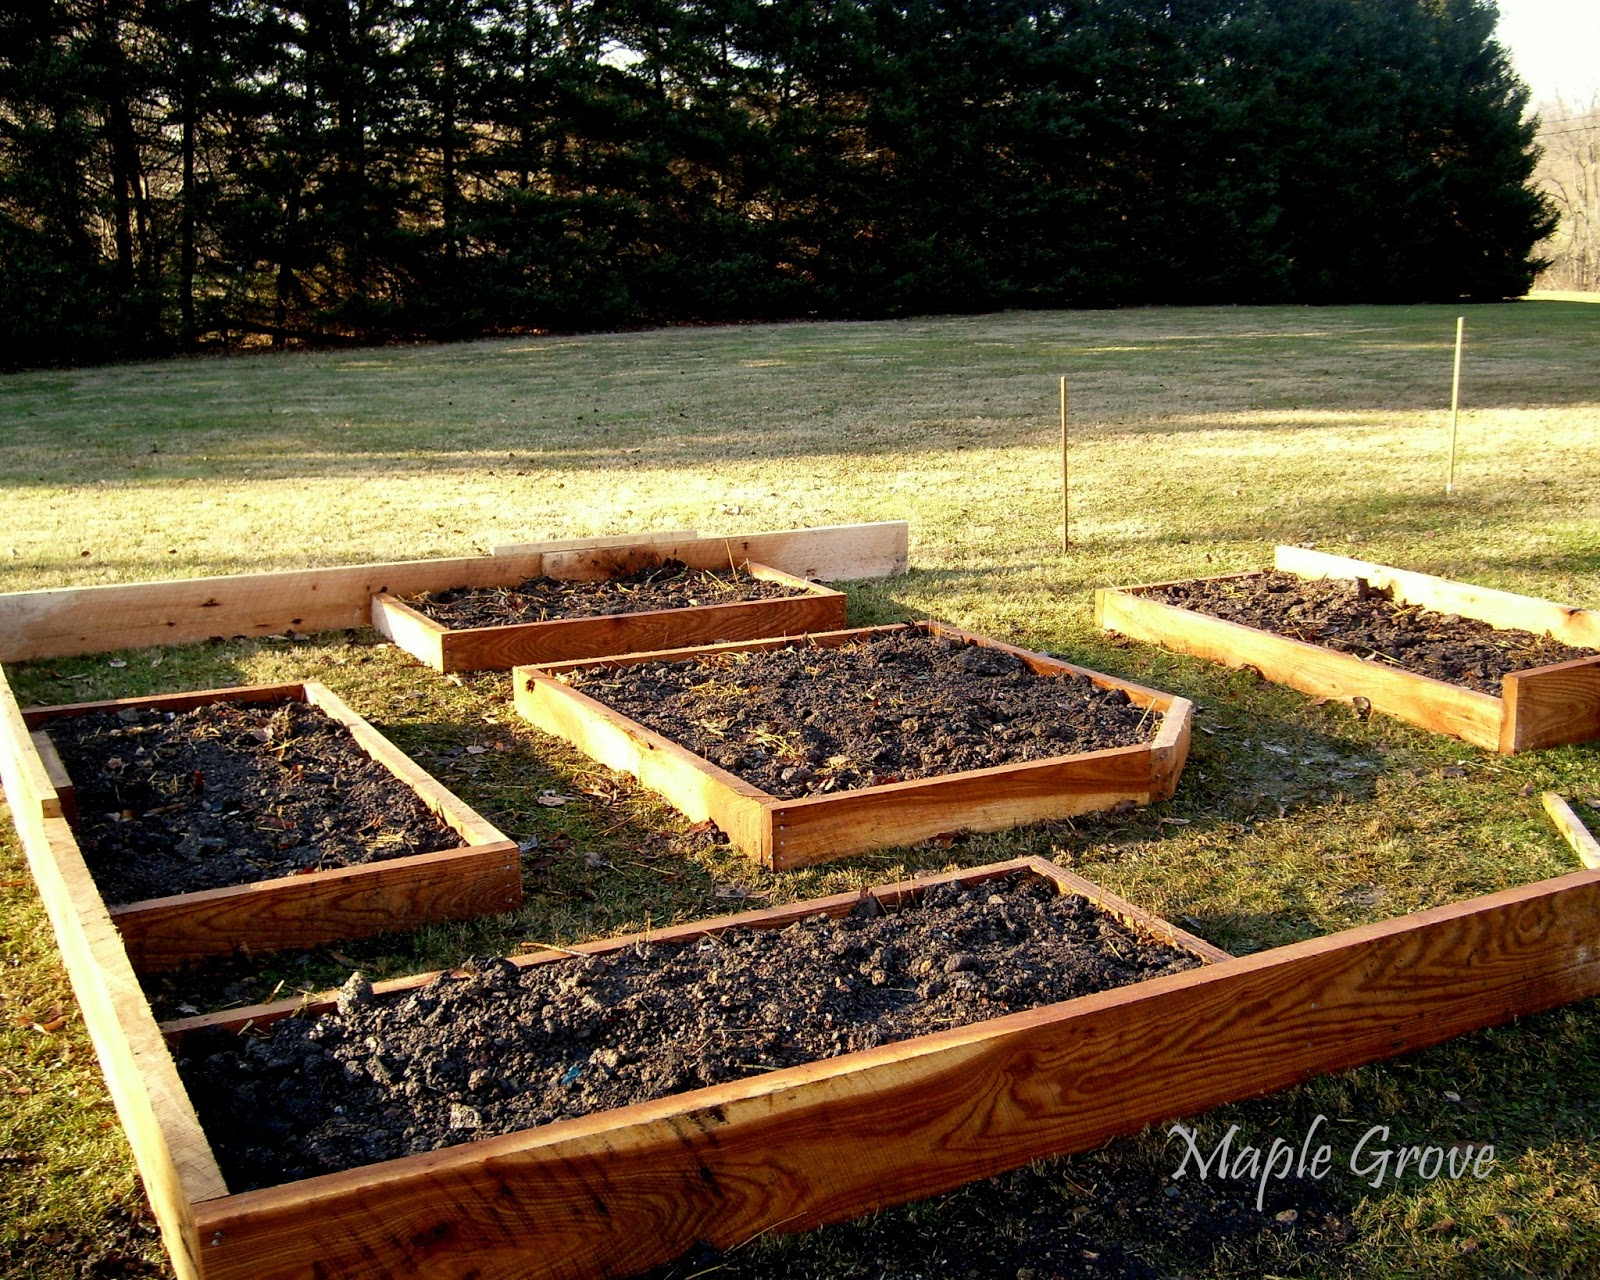 maple grove raised bed gardening with compost sandwiches